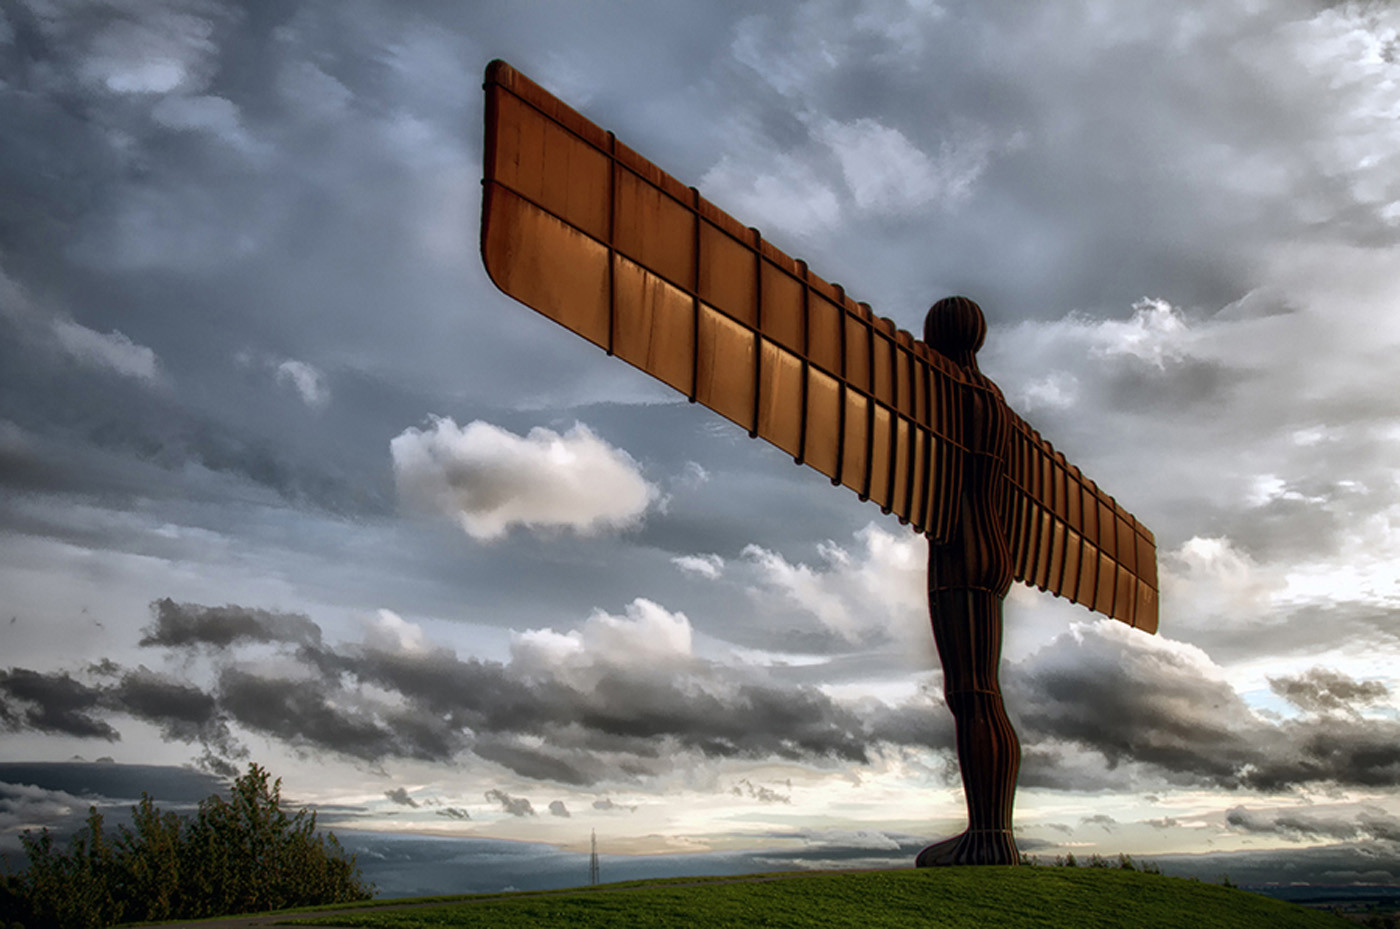 18 ANGEL OF THE NORTH - GATESHEAD by Ann Paine